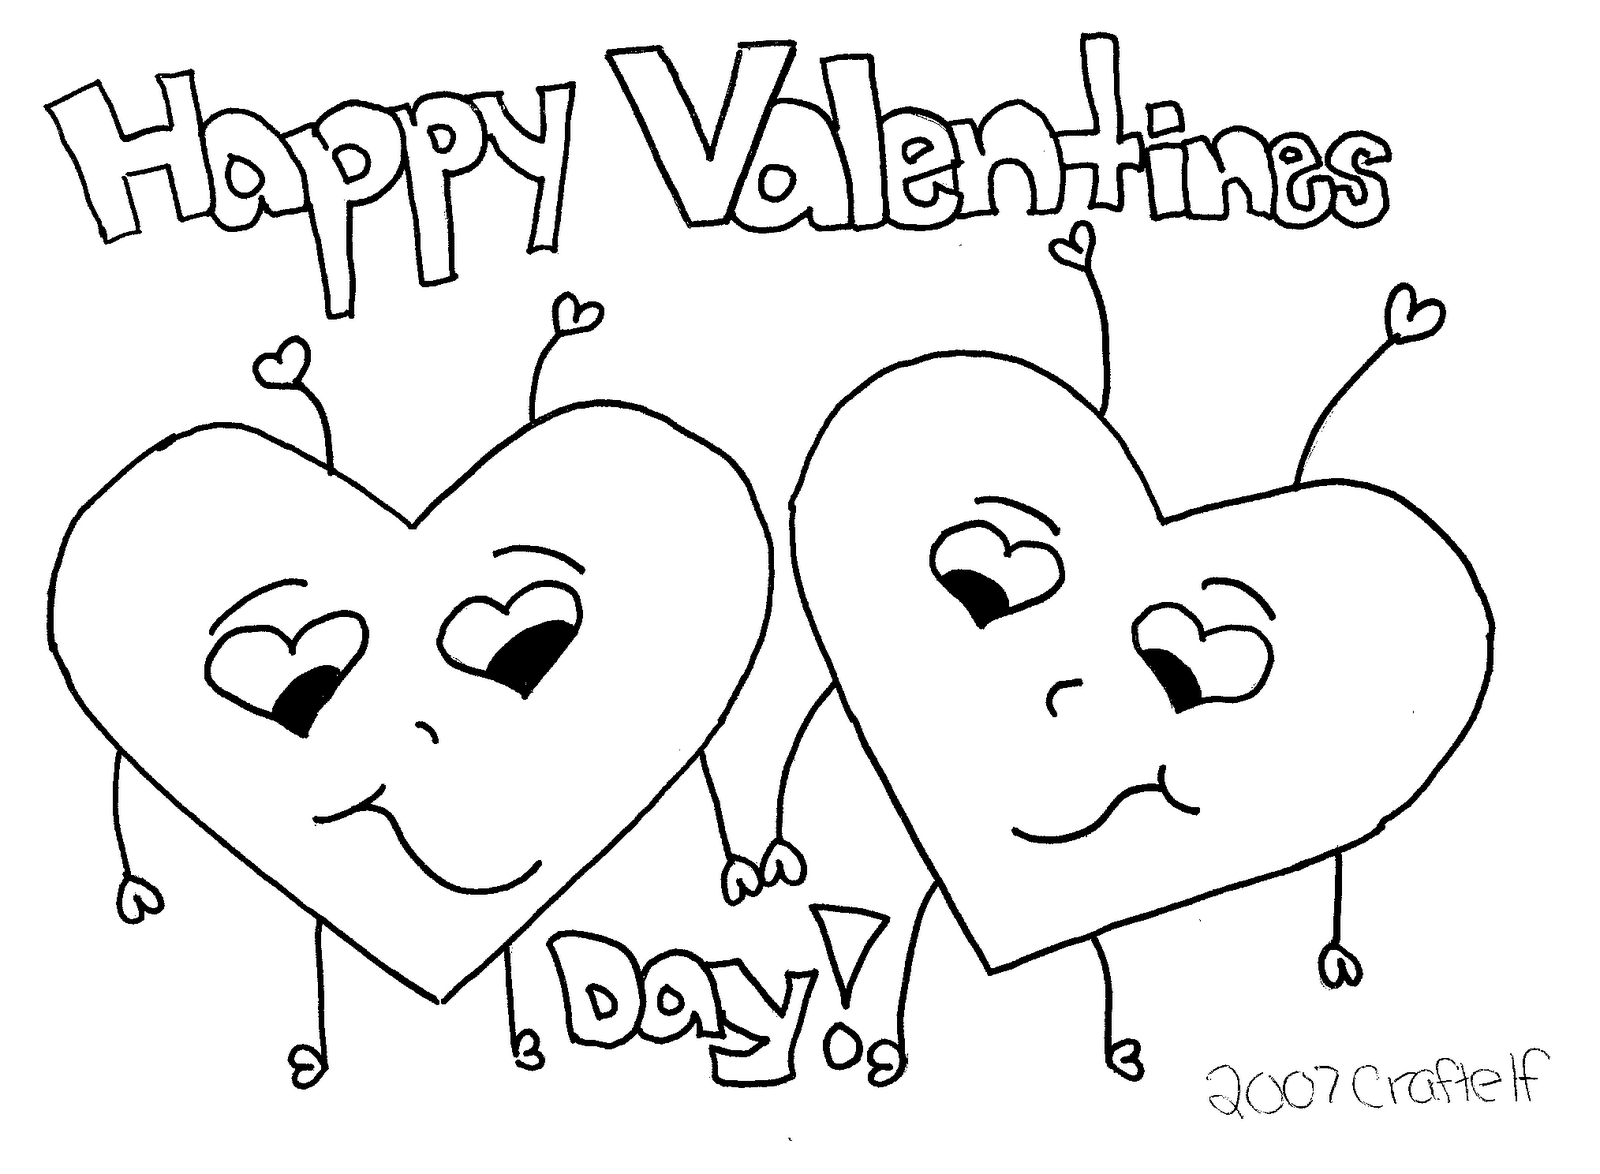 Happy Valentines Coloring Pages at GetDrawings.com | Free ...